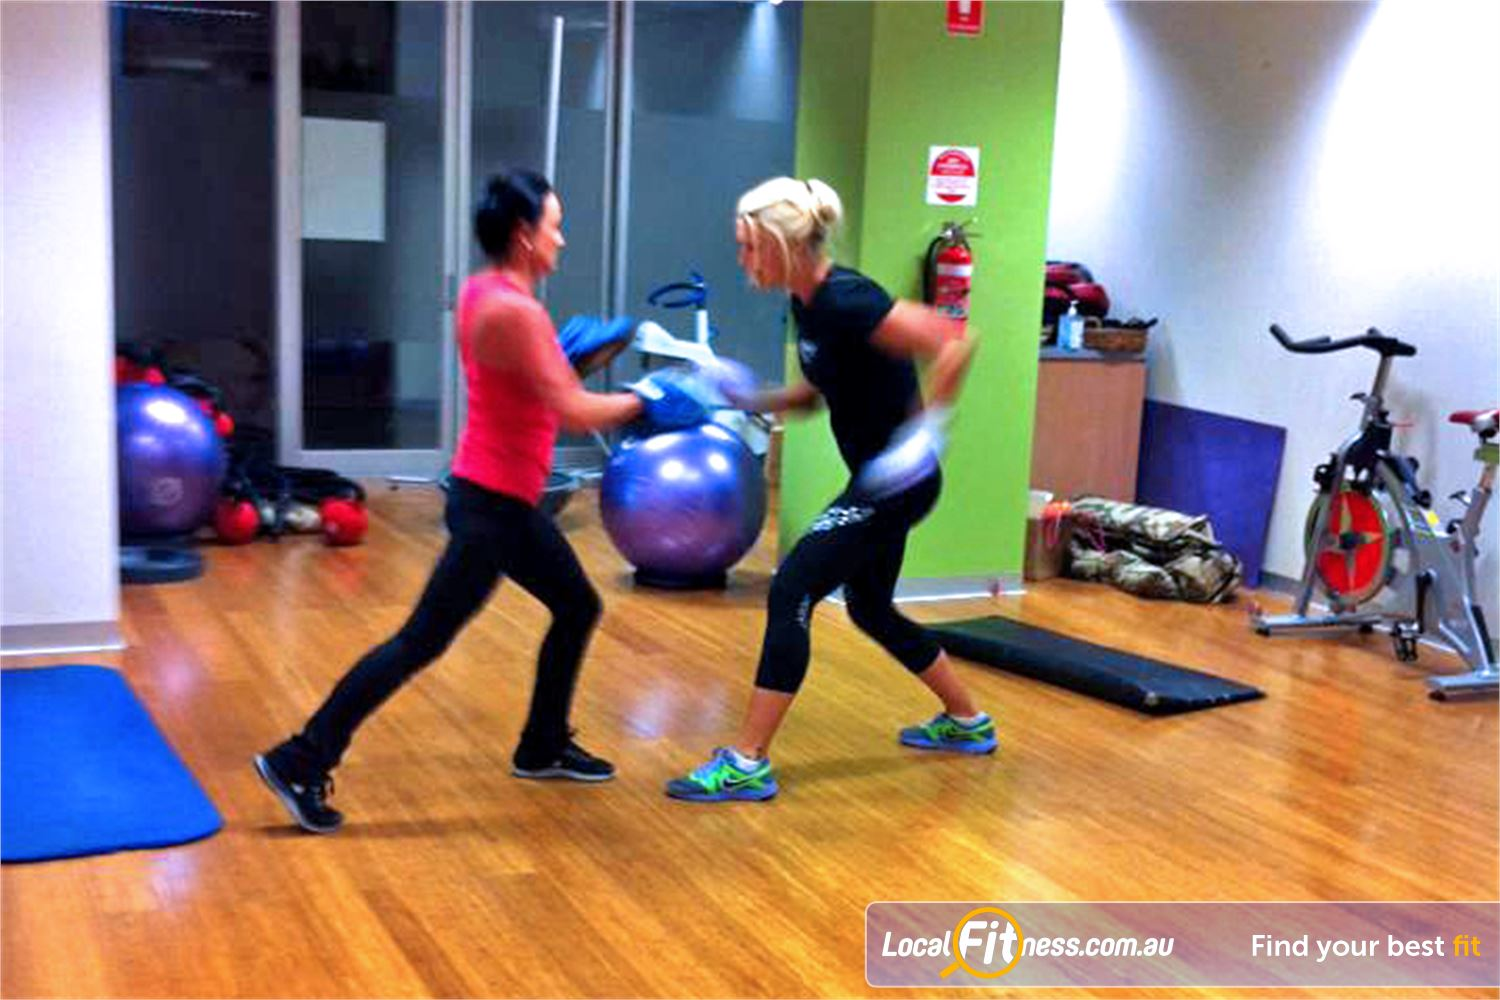 The Toorak Health Club Near Kooyong Try our quickie Toorak personal training sessions.